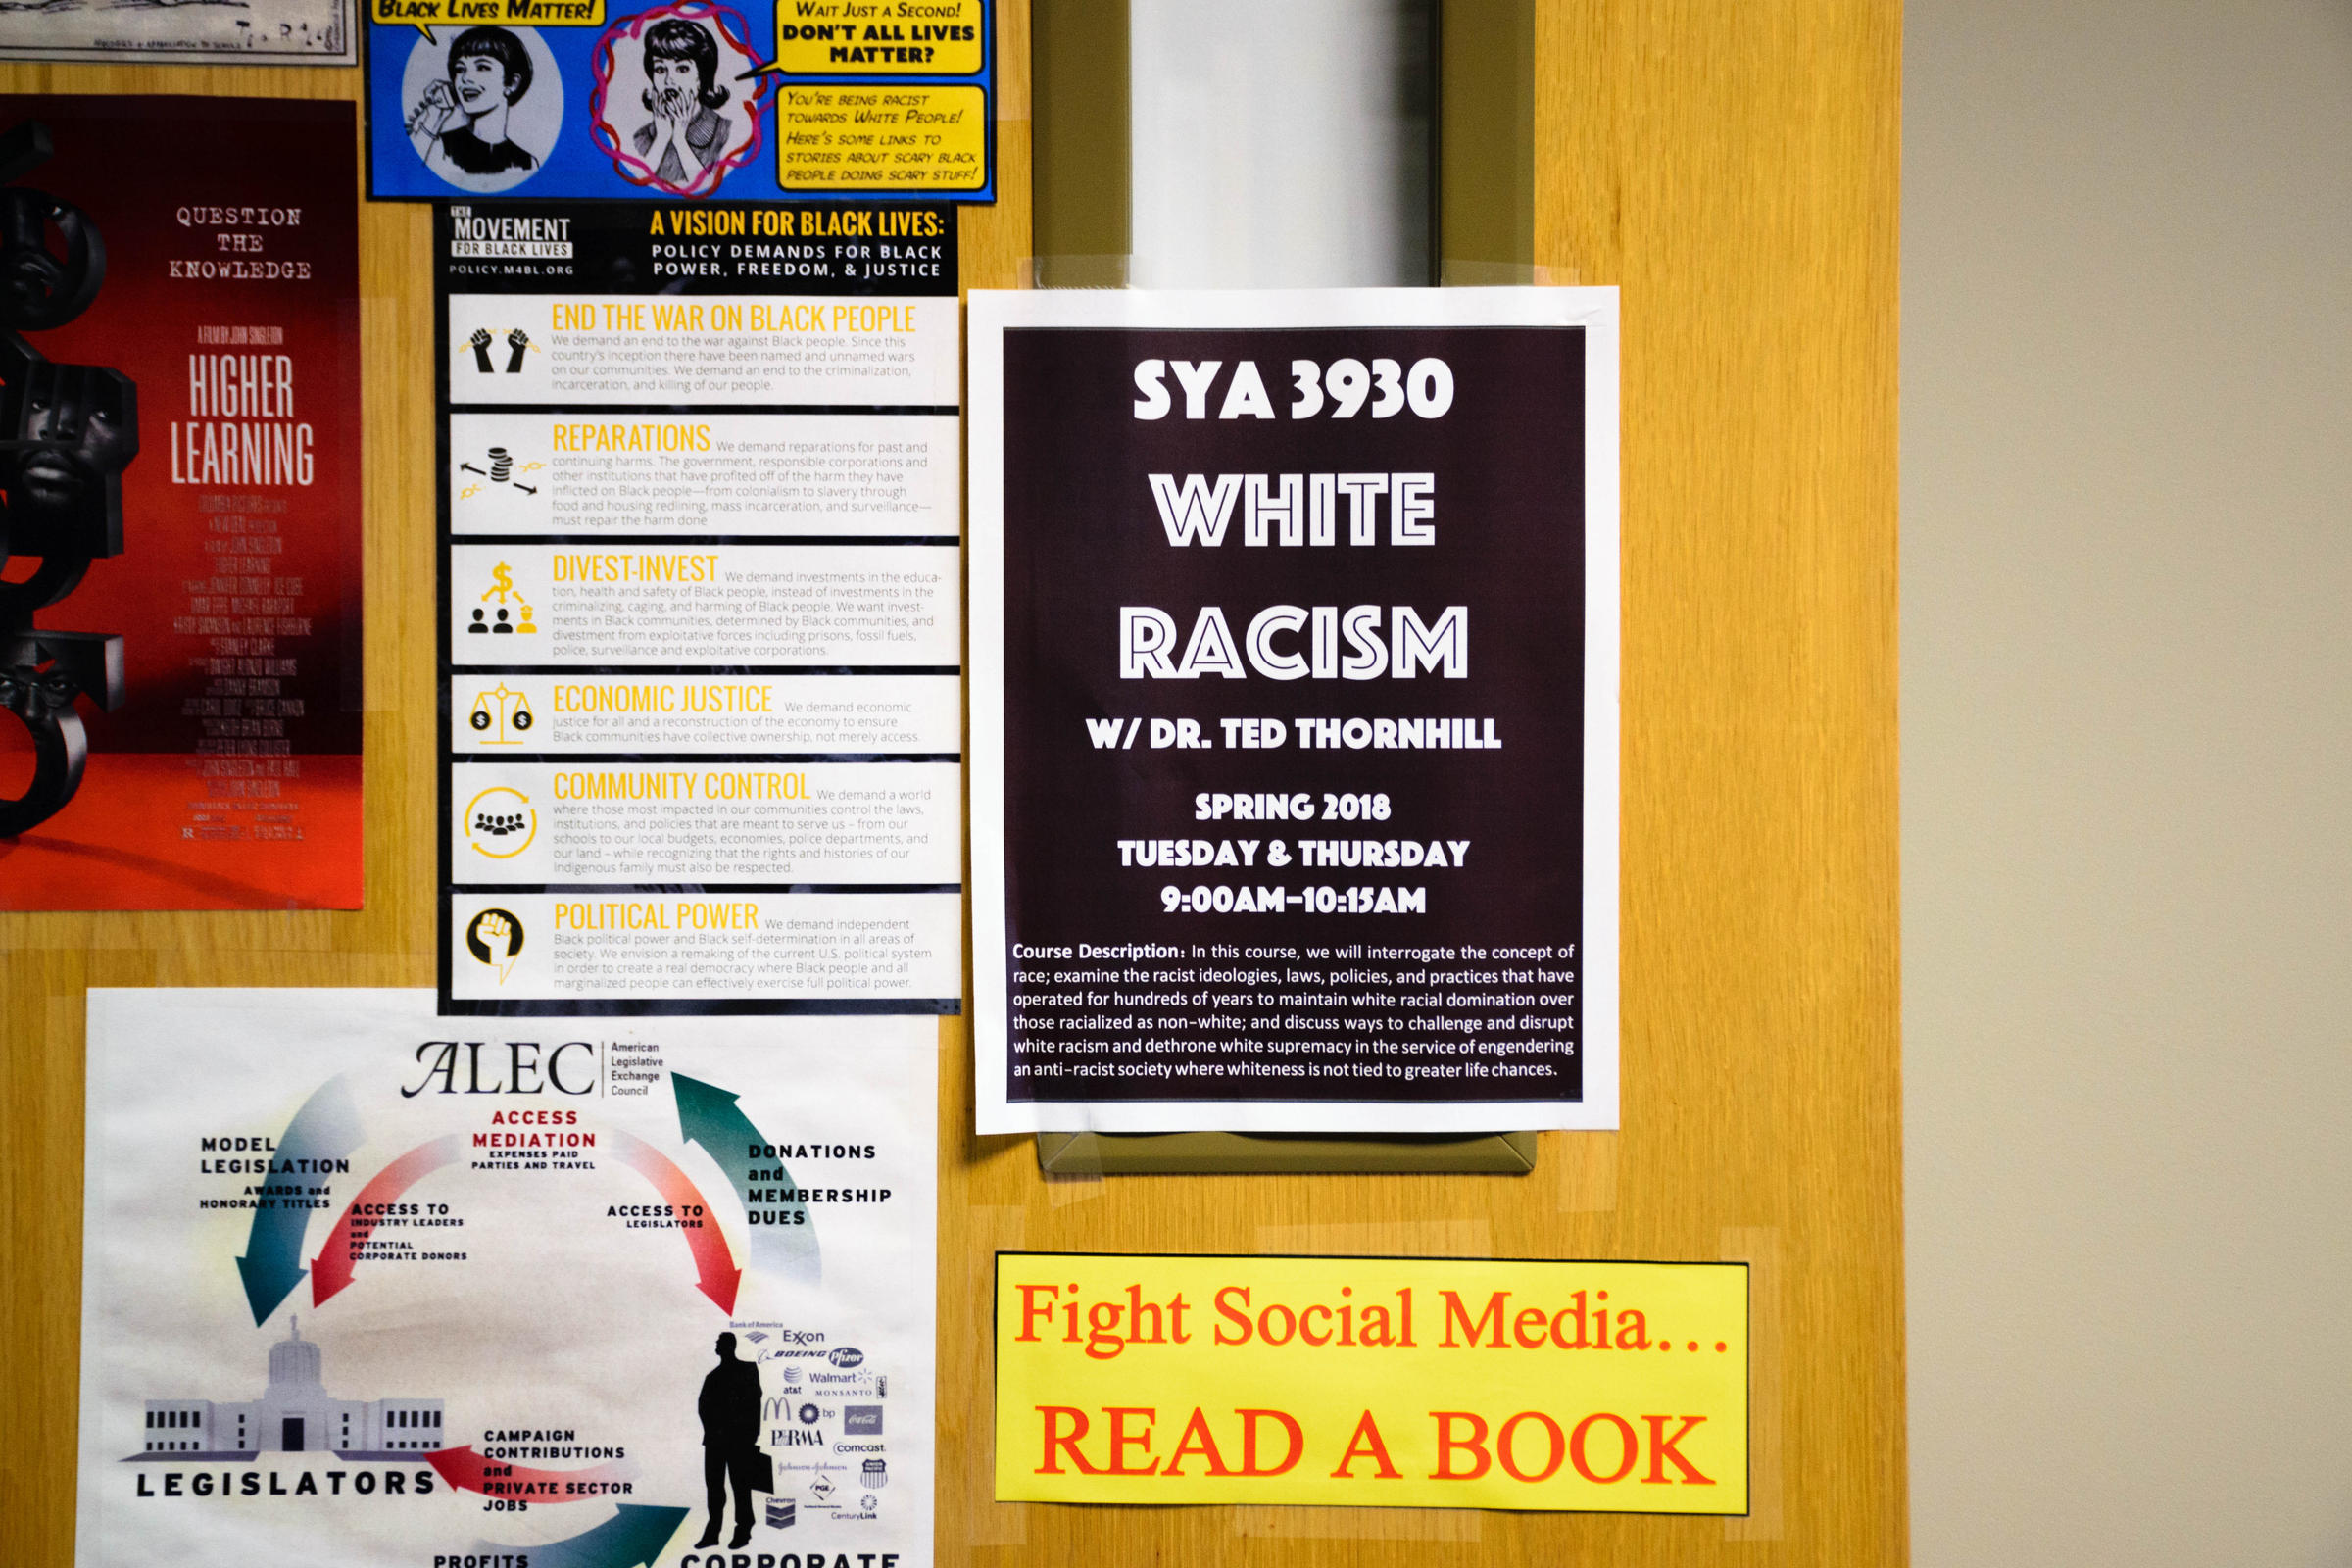 Flyer Advertising White Racism Course On Dr Ted Thornhills Office Door